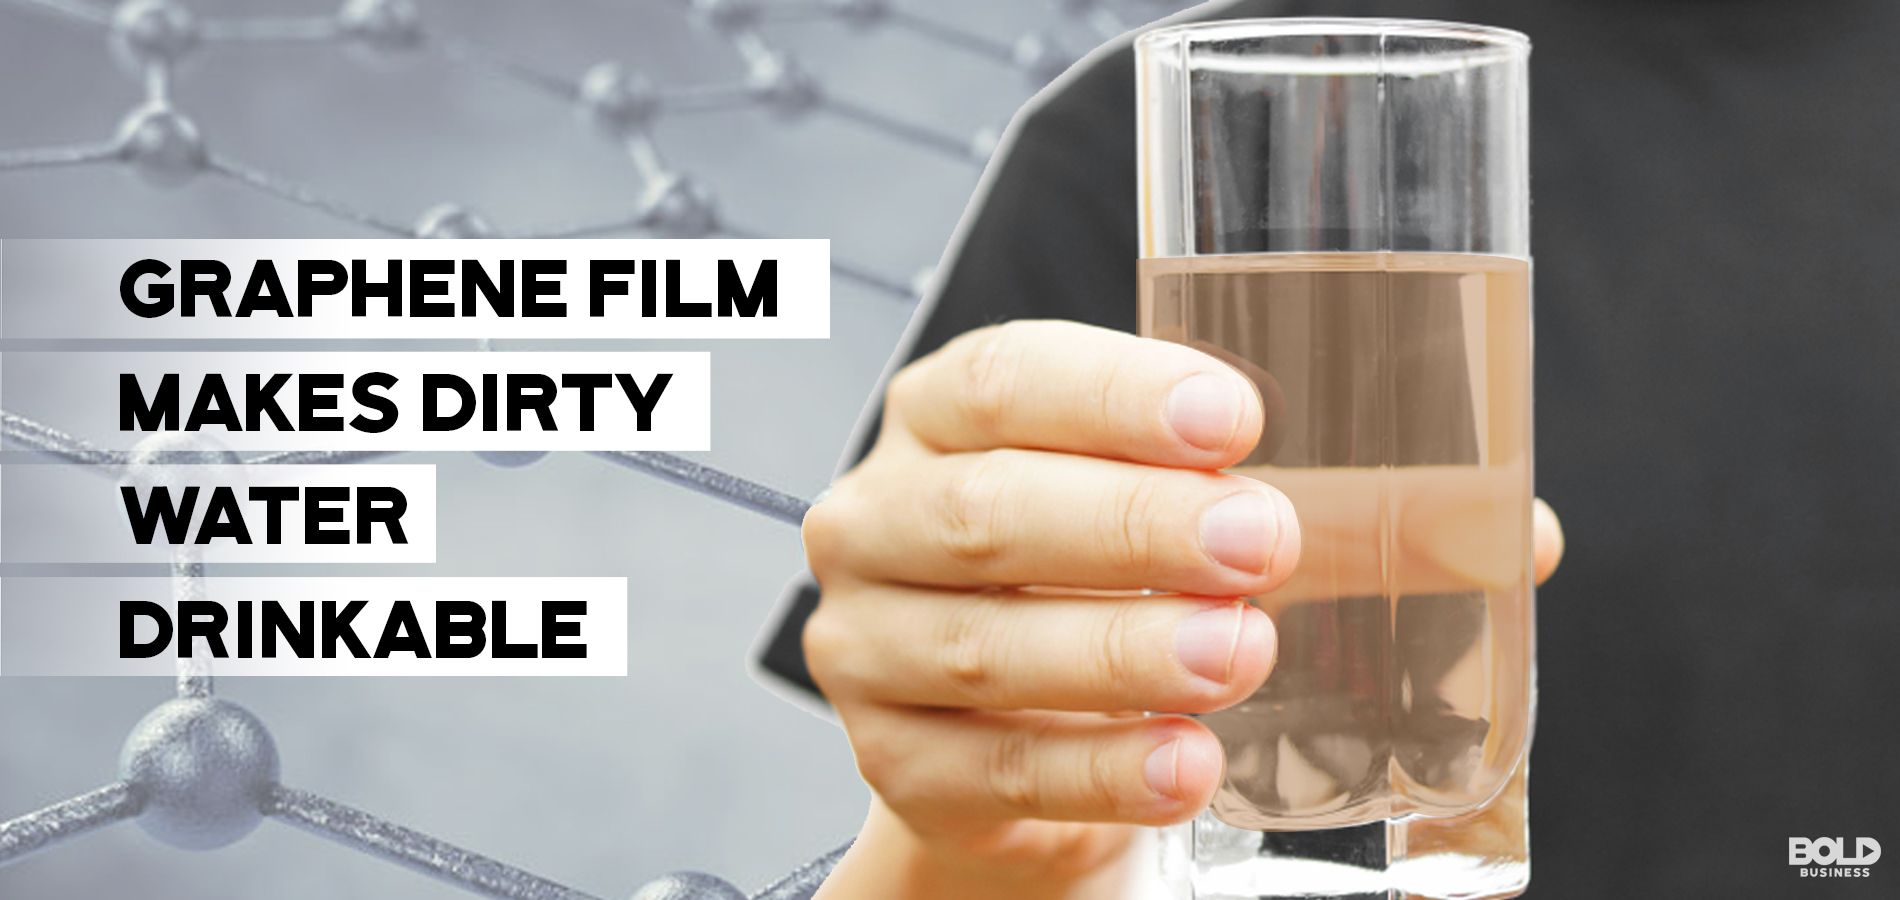 a photo containing an image of a hand holding up a glass of water with the words